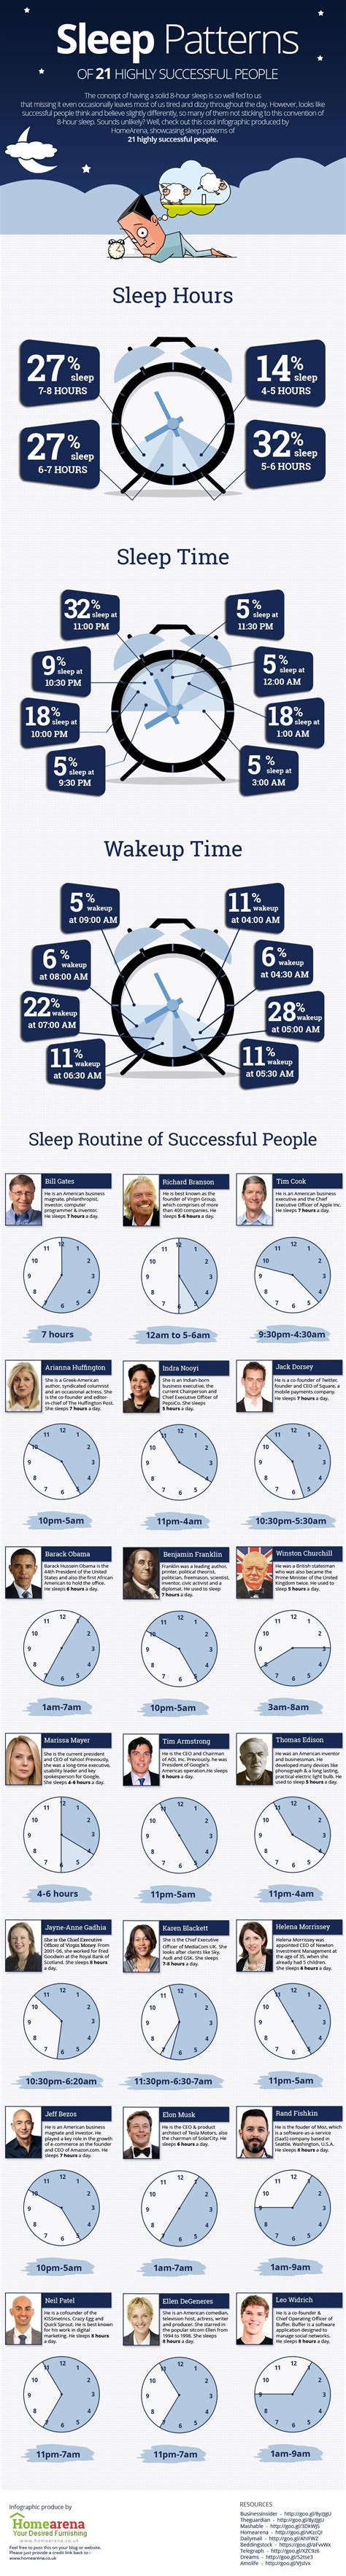 sleep pattern infographic the sleep patterns of bill gates tim cook other successful